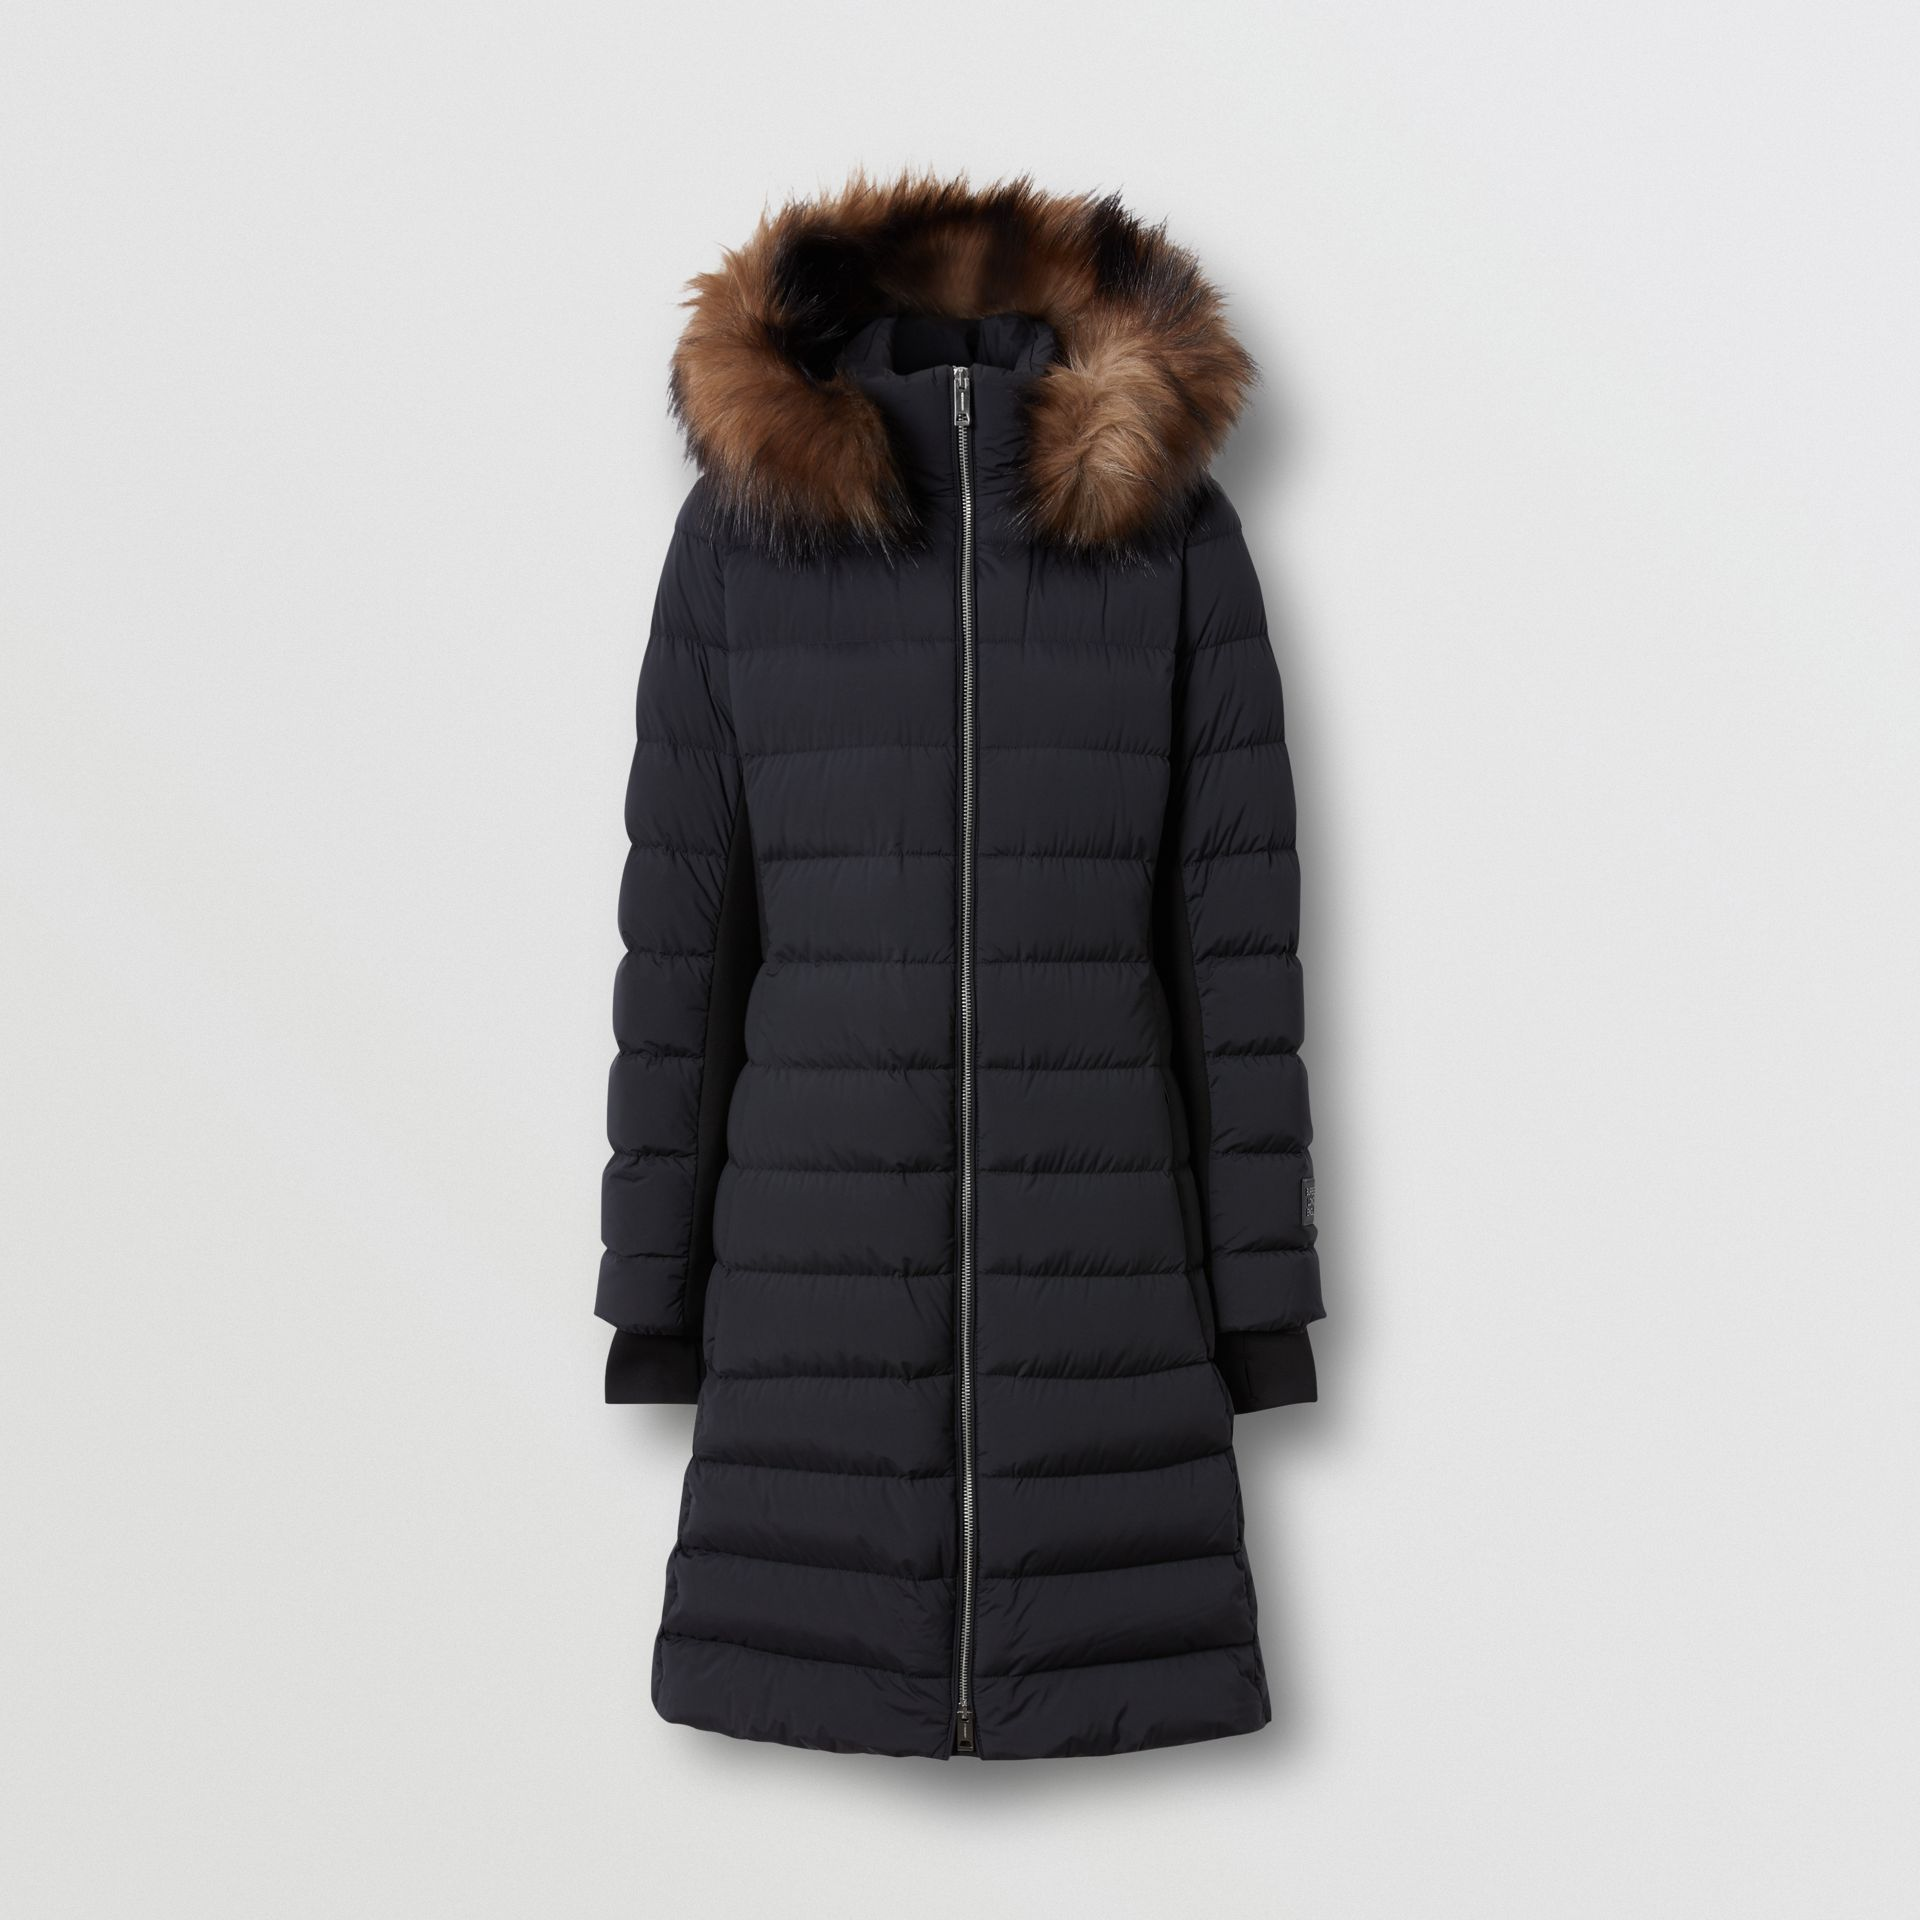 Detachable Faux Fur Trim Hooded Puffer Coat in Black - Women | Burberry - gallery image 2